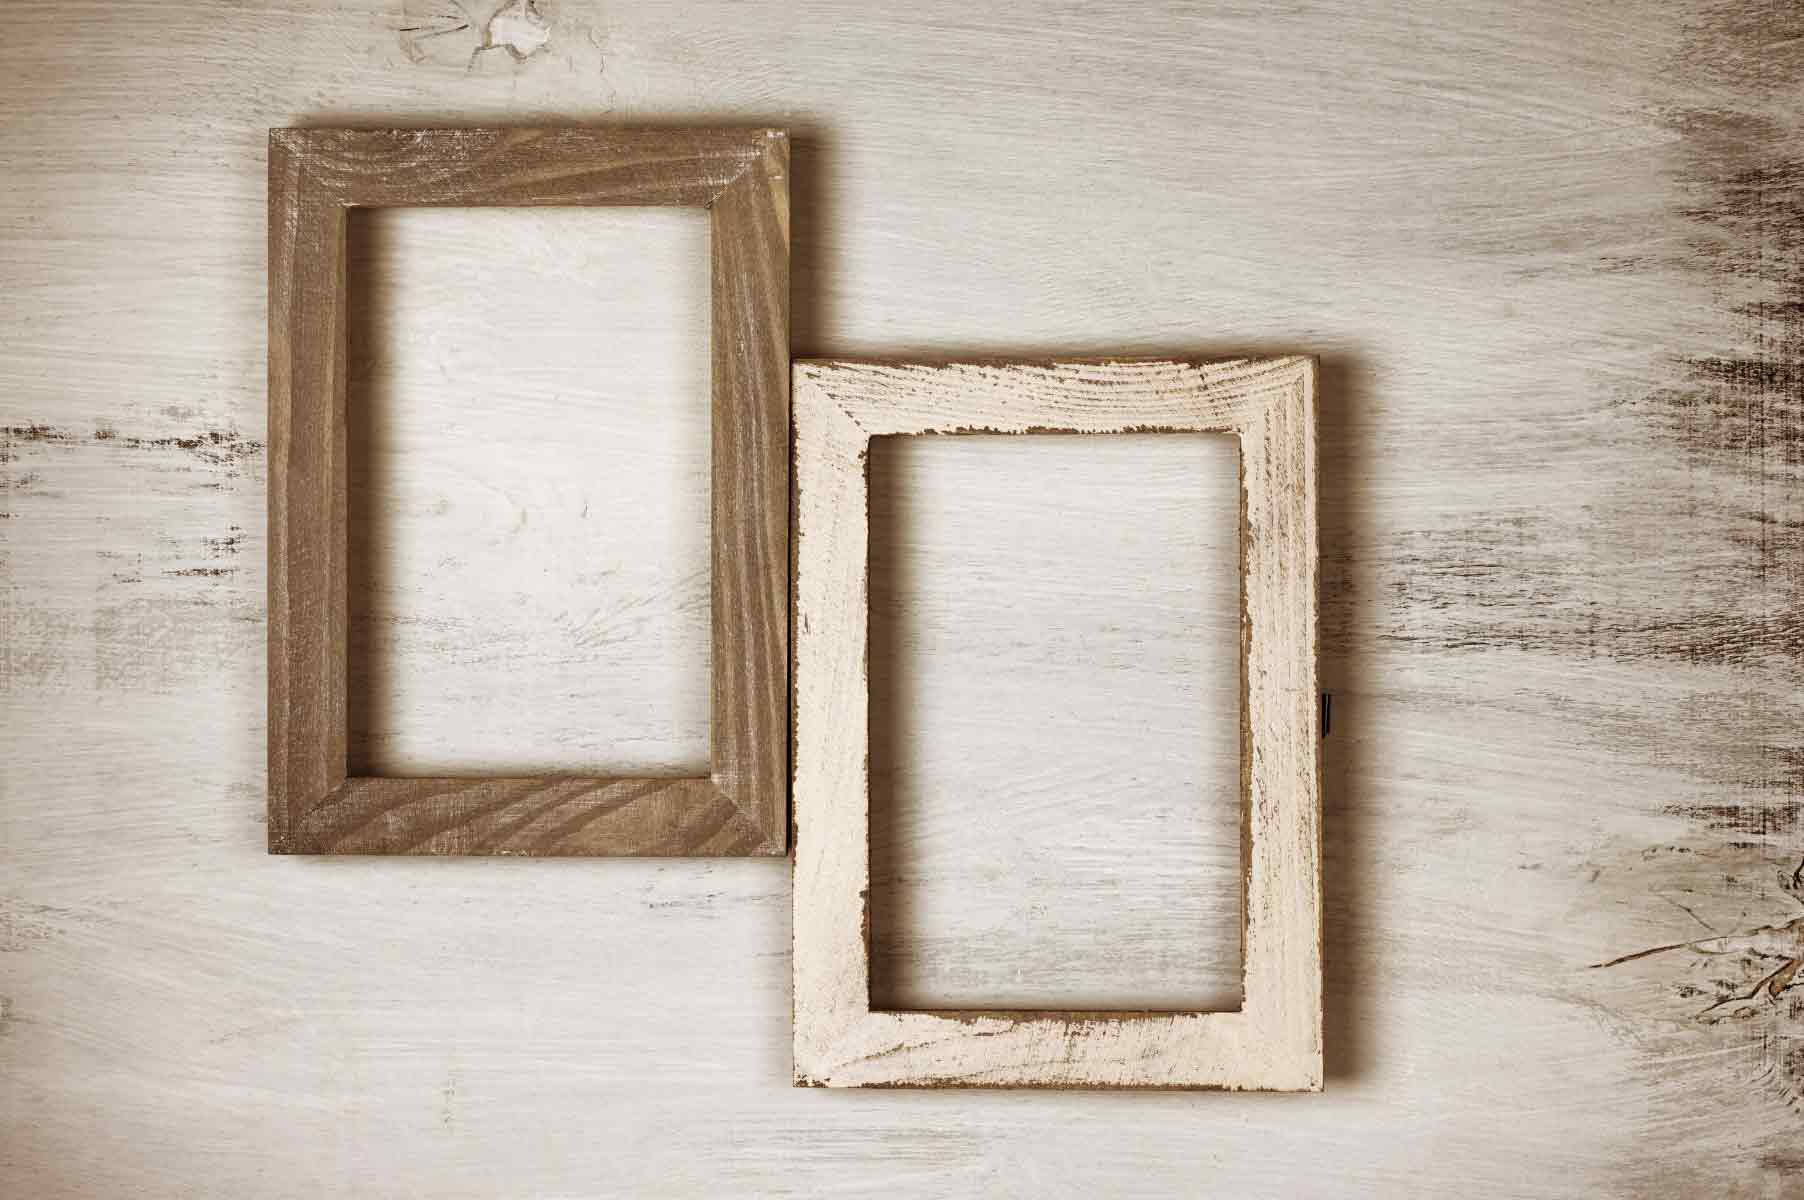 Shabby chic picture frames custom picture frames your home or office dcor will get cozy with the help of one of our shabby chic picture frames jeuxipadfo Gallery